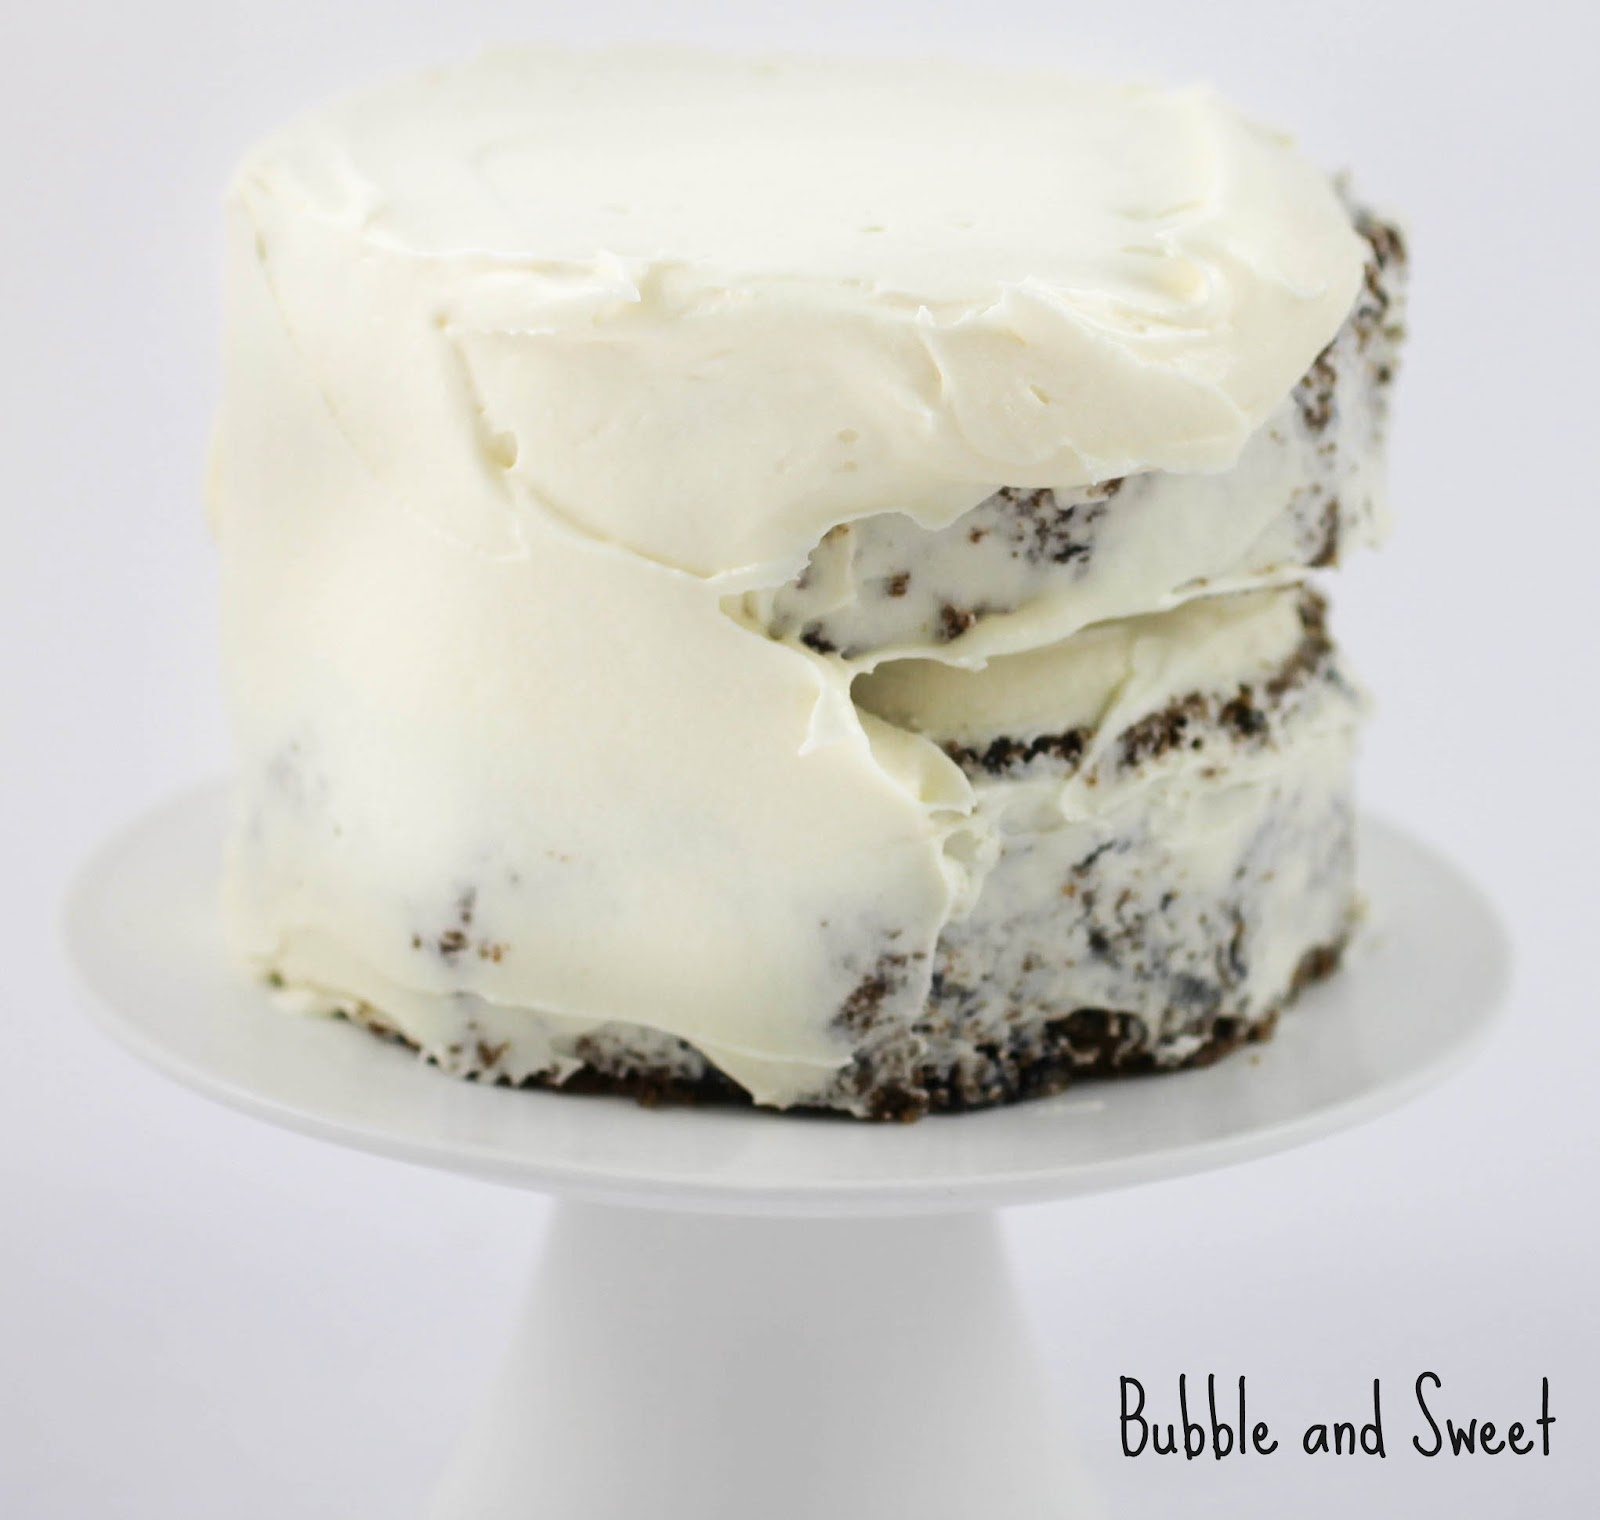 ... and Sweet: Puple Carrot and Blueberry cake with Cream Cheese Frosting